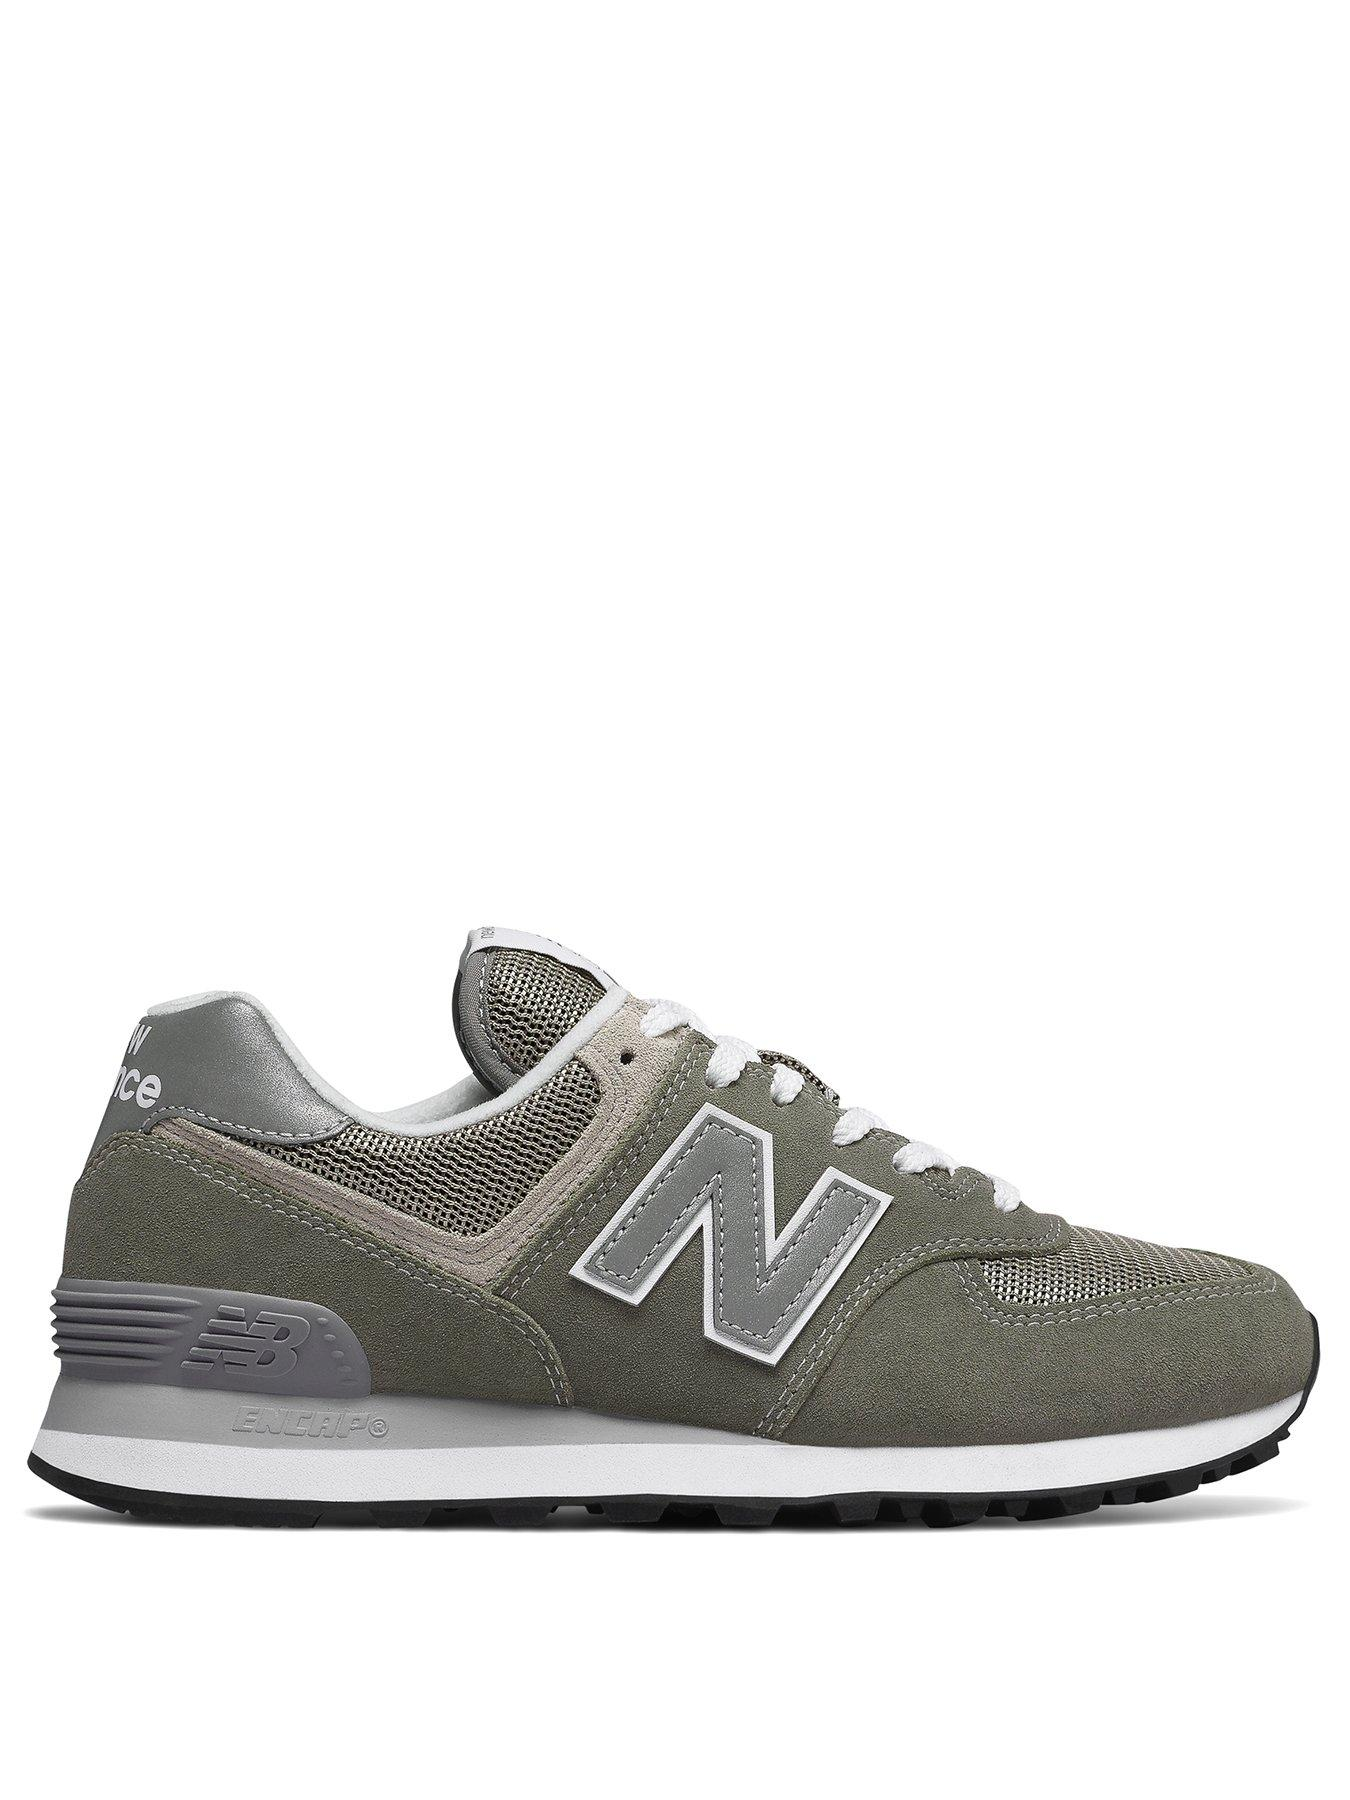 New Balance 574 - Grey Day